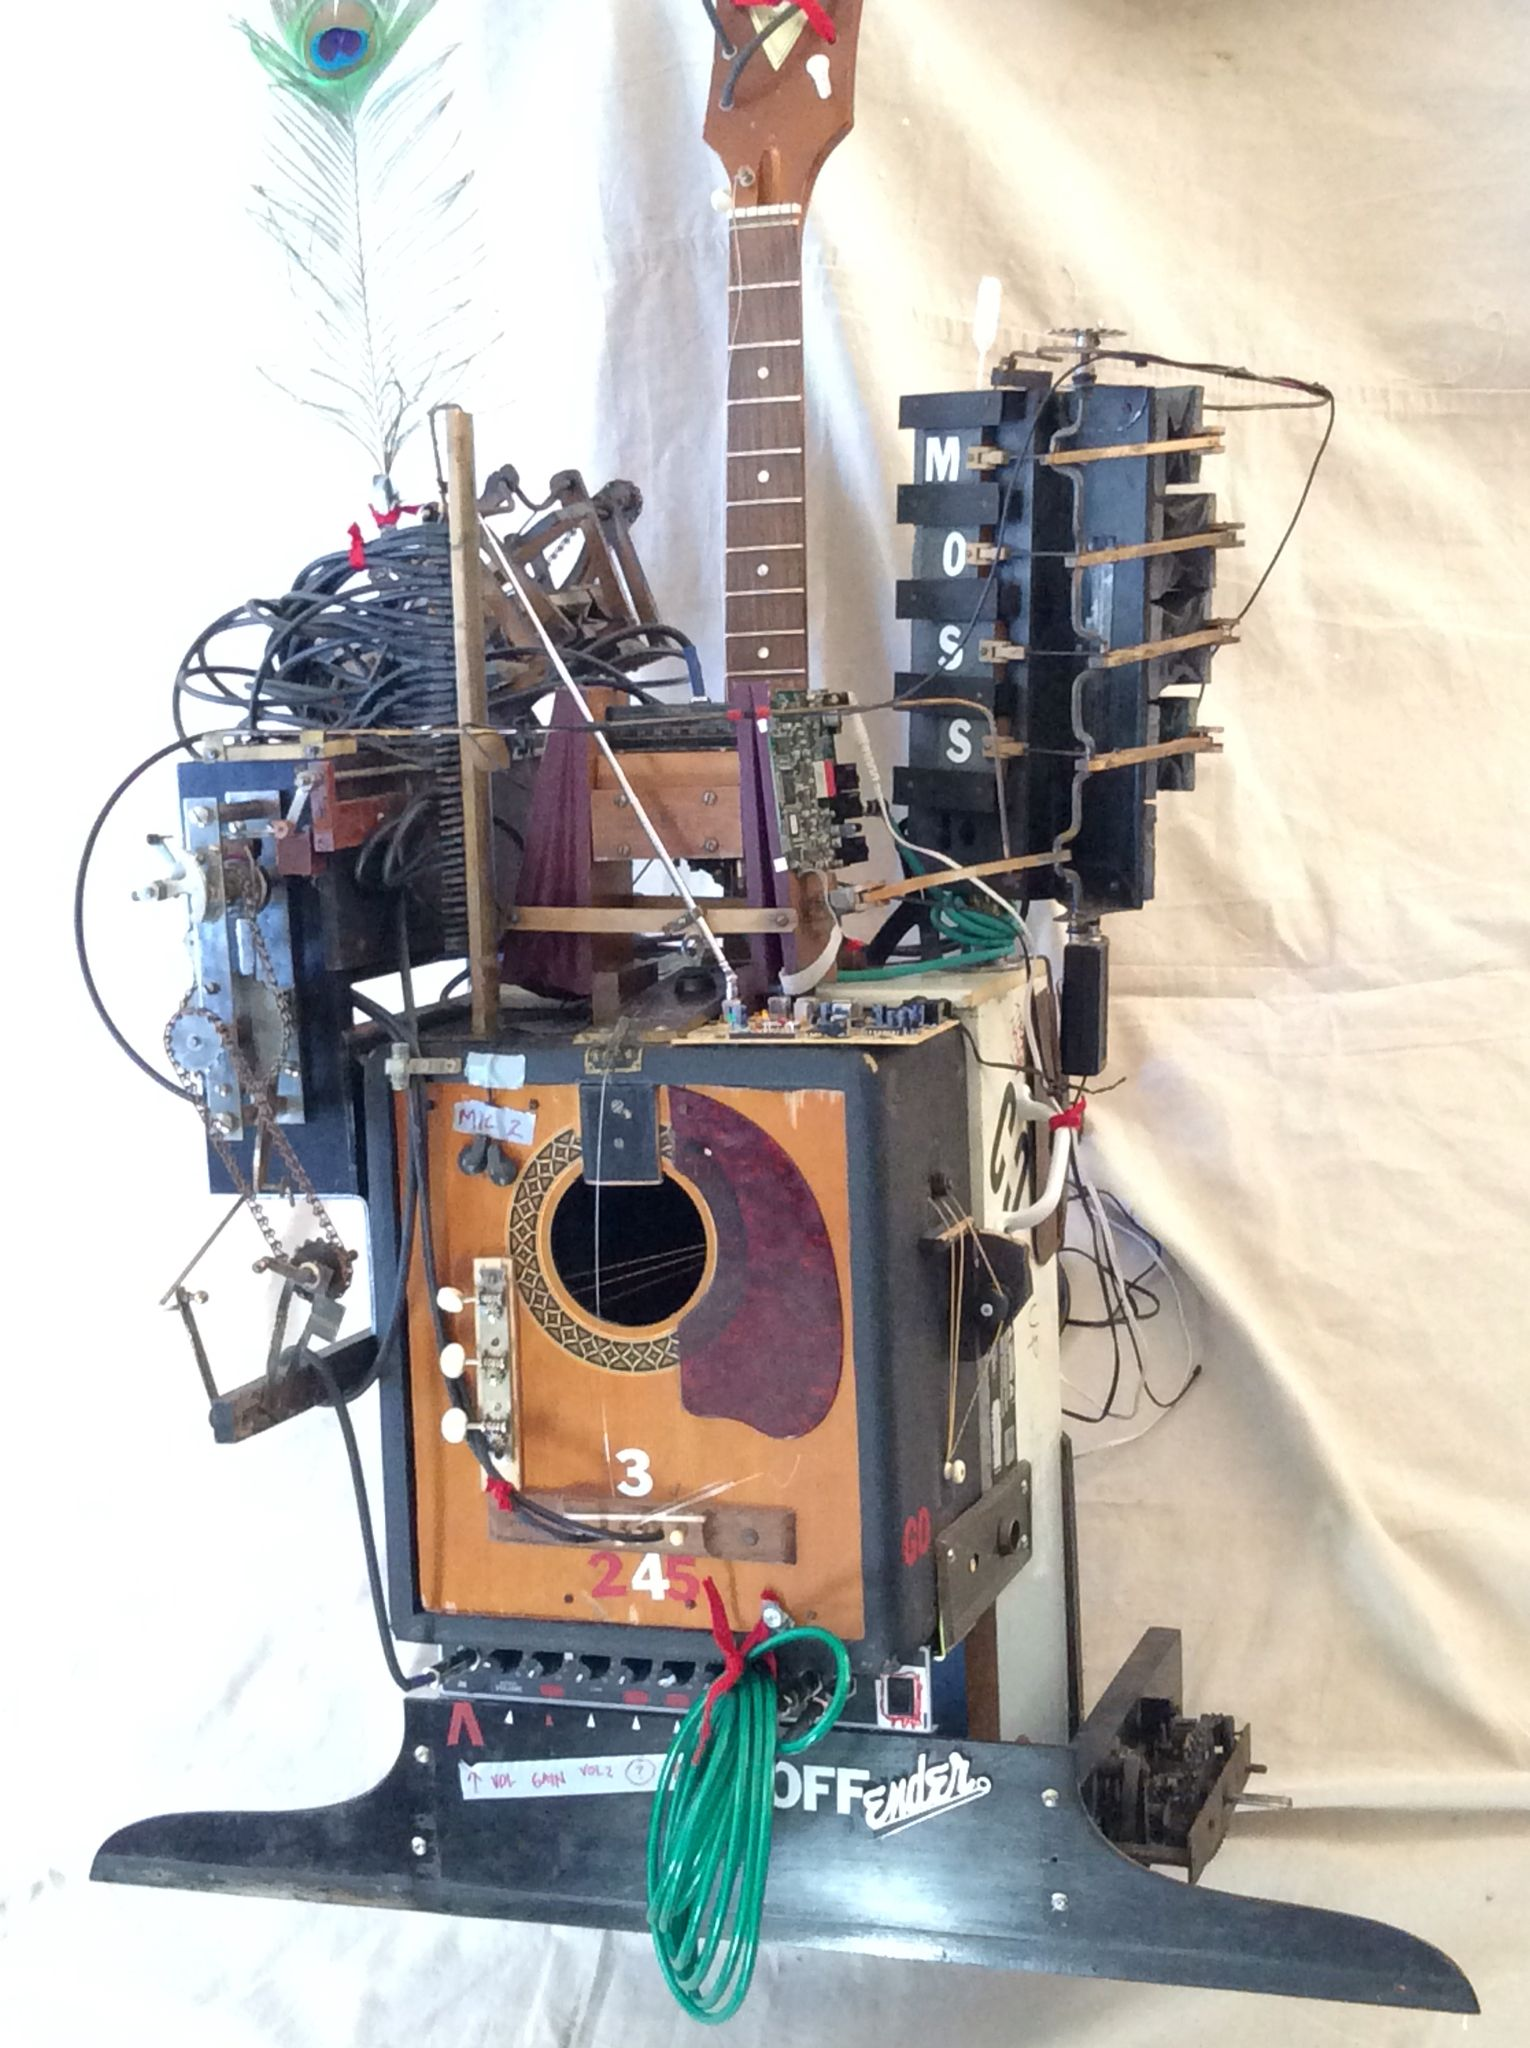 Diy Hybrid Working Steampunk Inspired Crazy Guitar And Amp Combo Wiring On Building Electric The Electronics Musical Instrument With Two Effects Pedals Three Microphonesalso Has